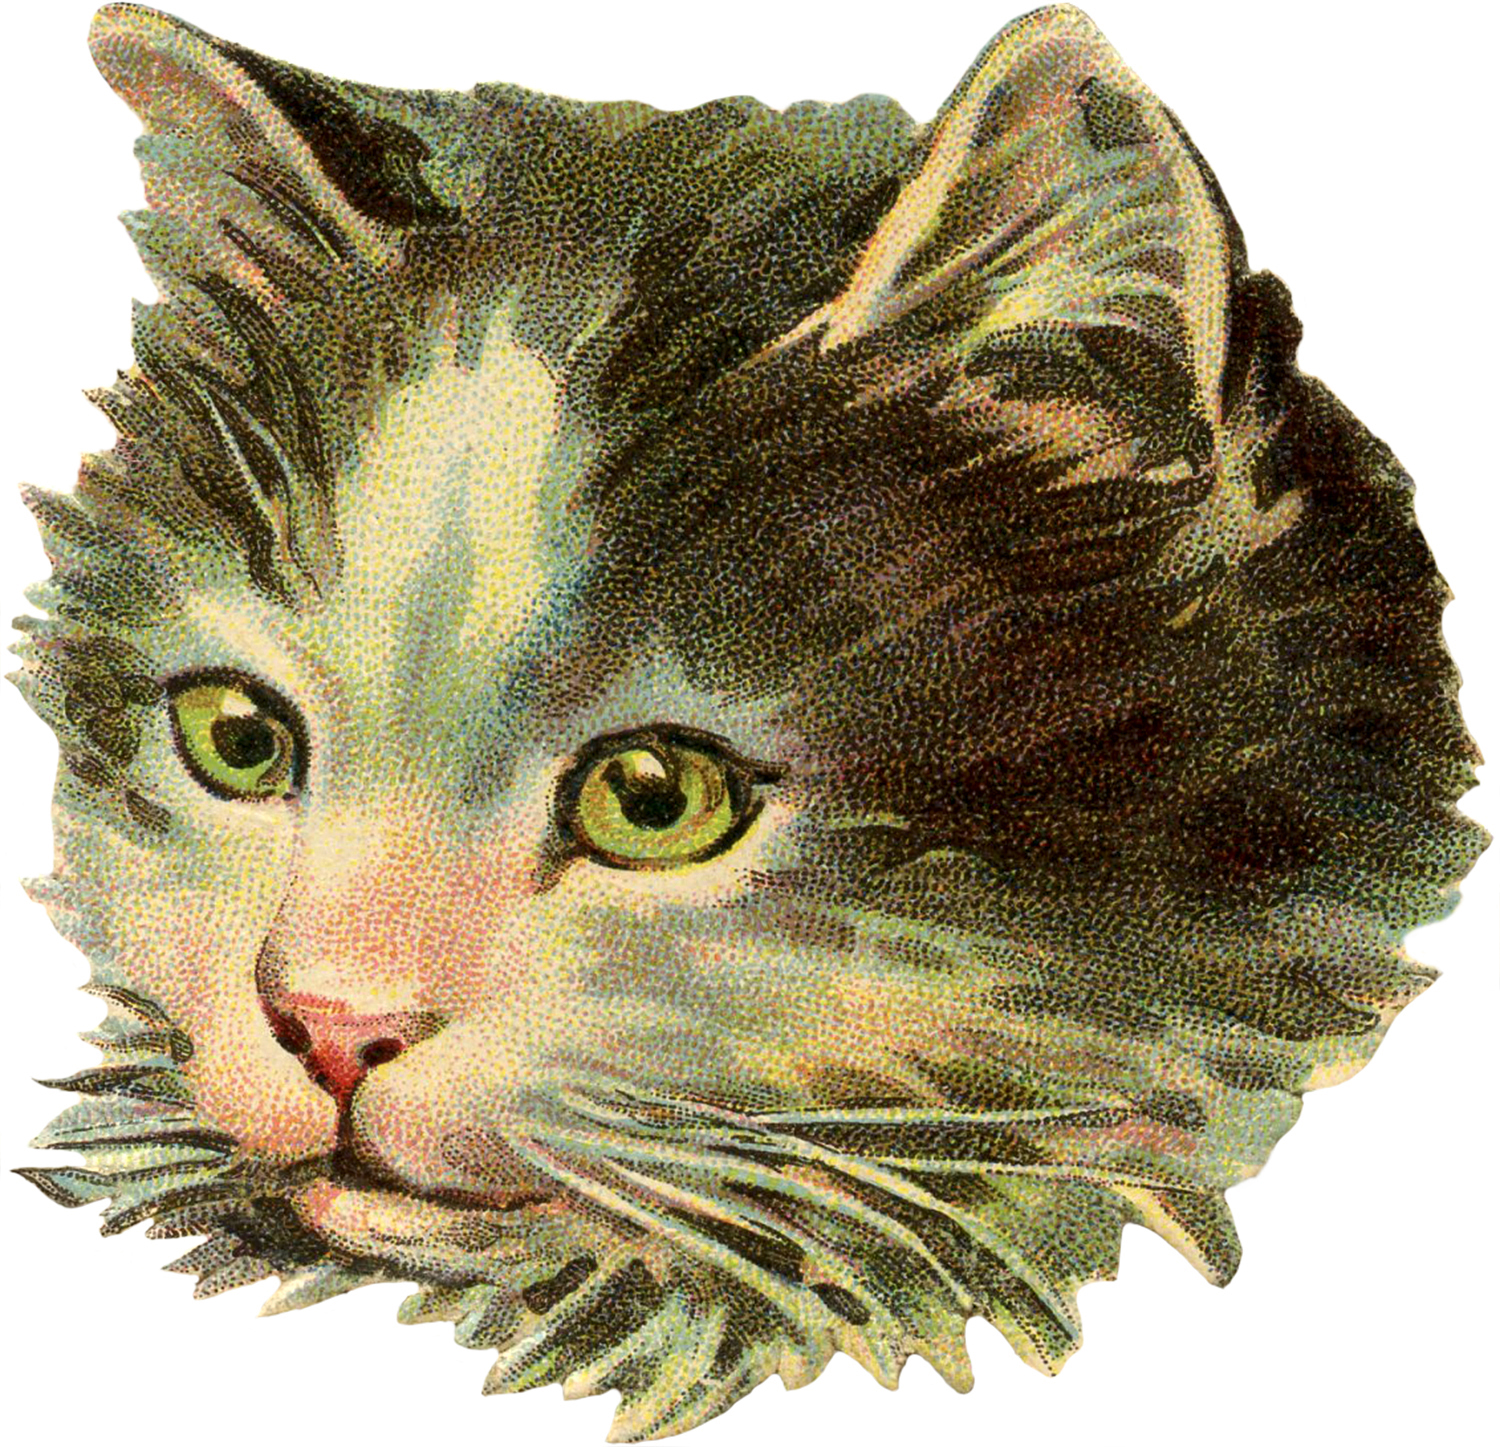 Classic Retro Illustration: Vintage Cat Illustration